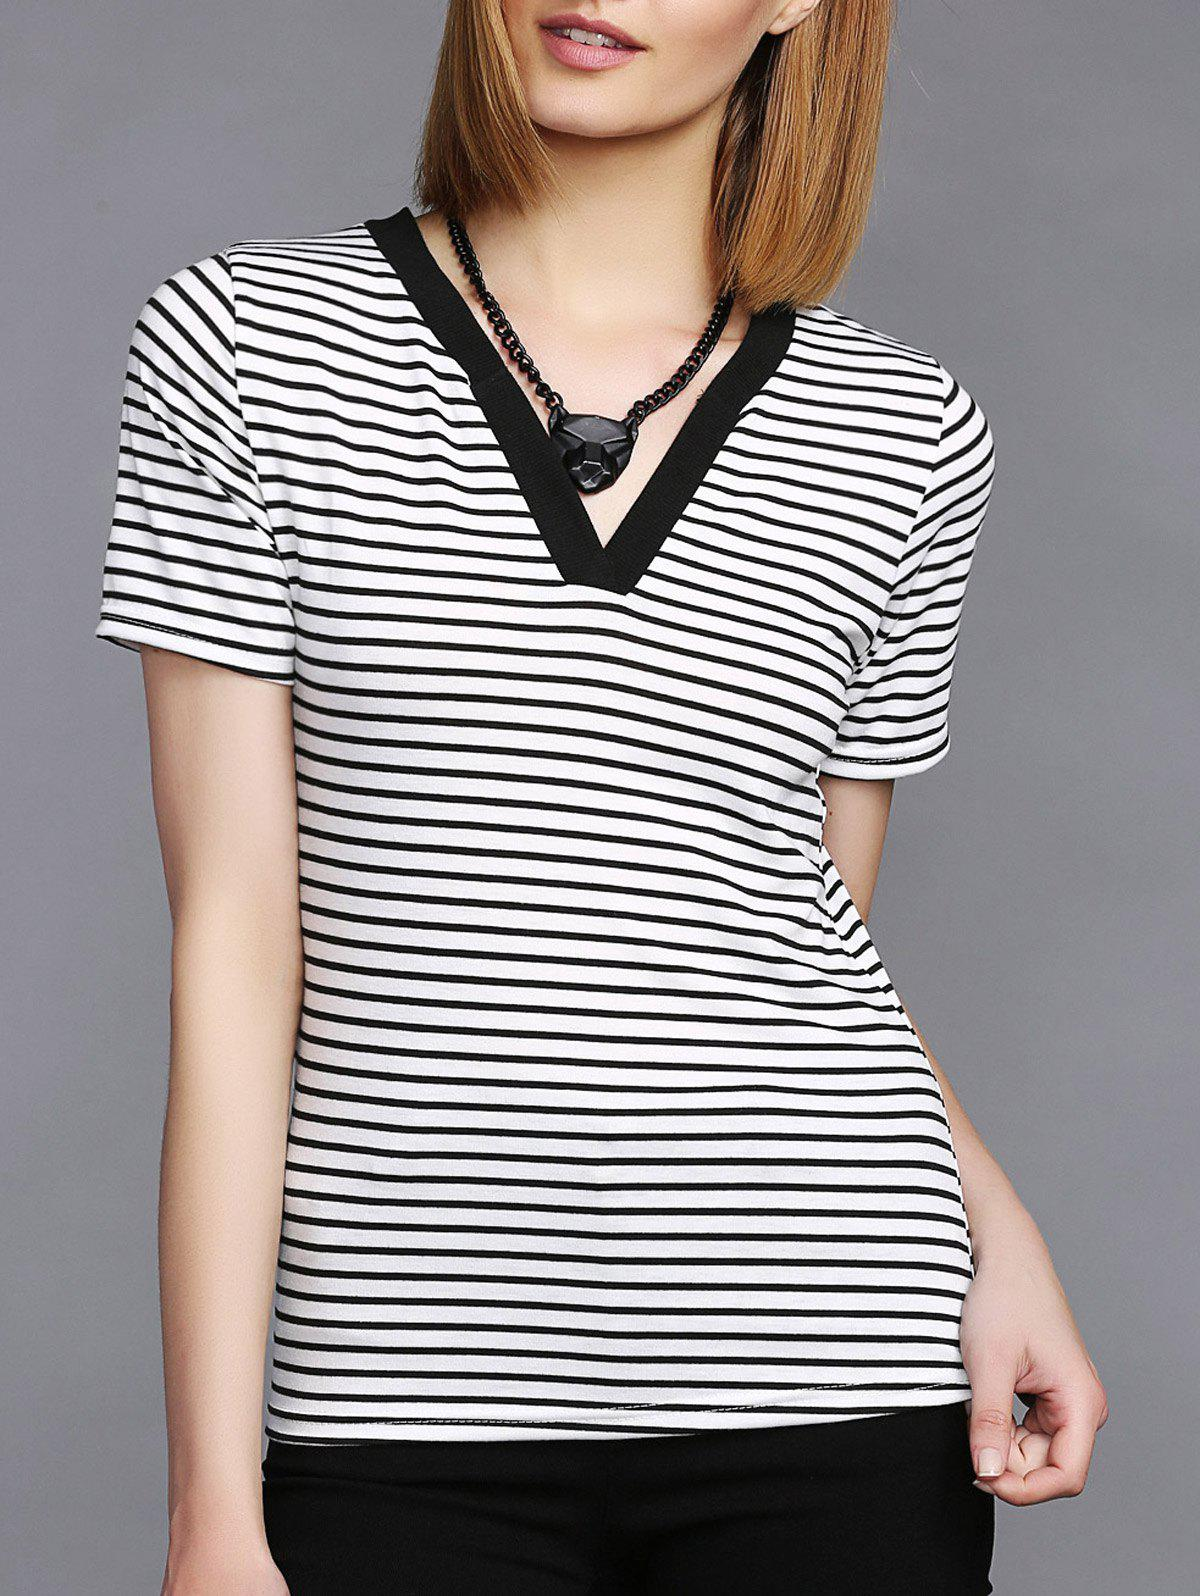 Basic Stripe V-Neck Short Sleeve T-Shirt For Women - BLACK M